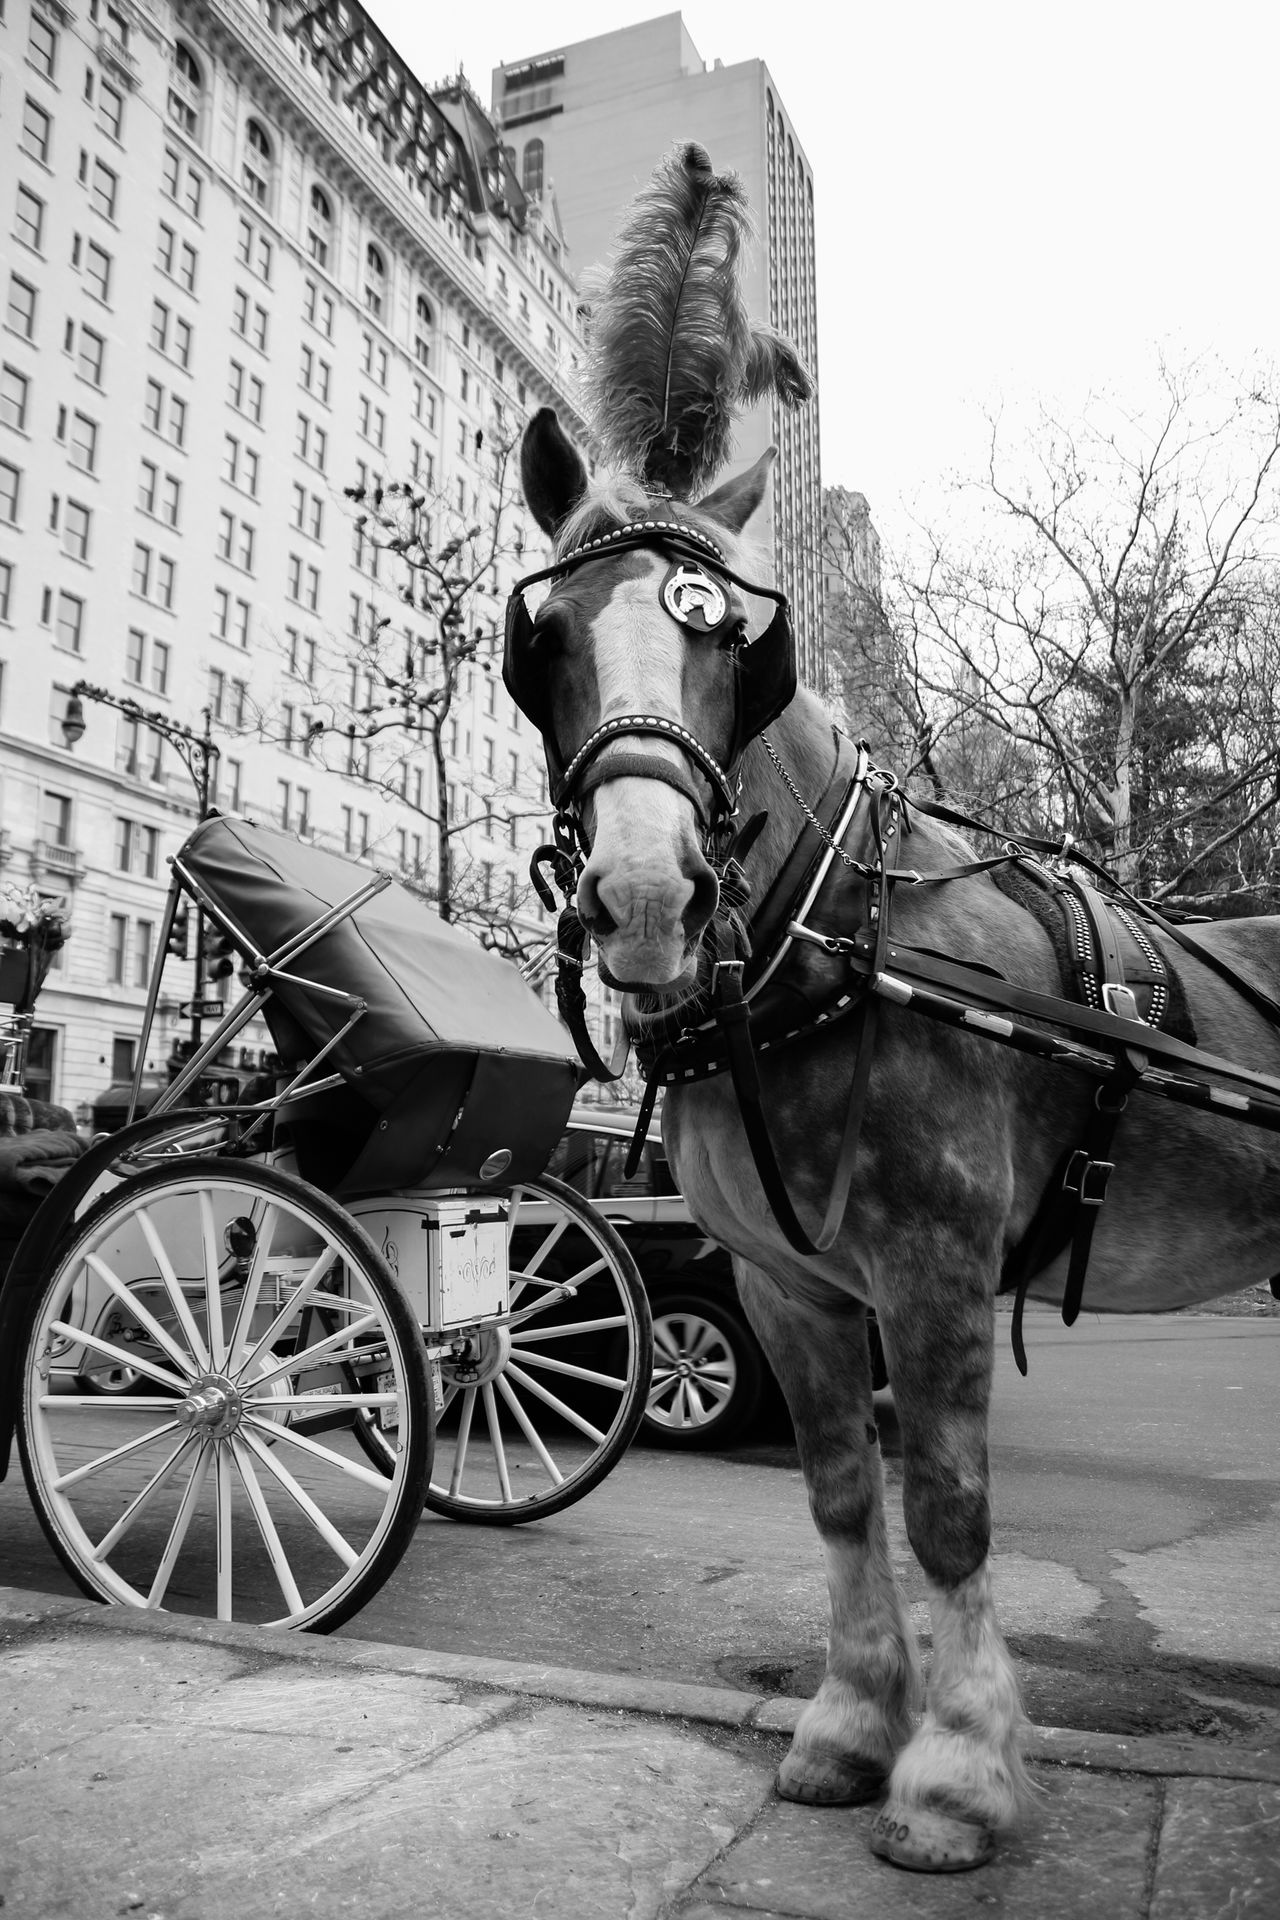 Animal Themes Carriage Central Park - NYC City Day Domestic Animals Horse Horse Cart Horsedrawn Mammal Mode Of Transport No People NYC One Animal Outdoors Street Transportation Working Animal